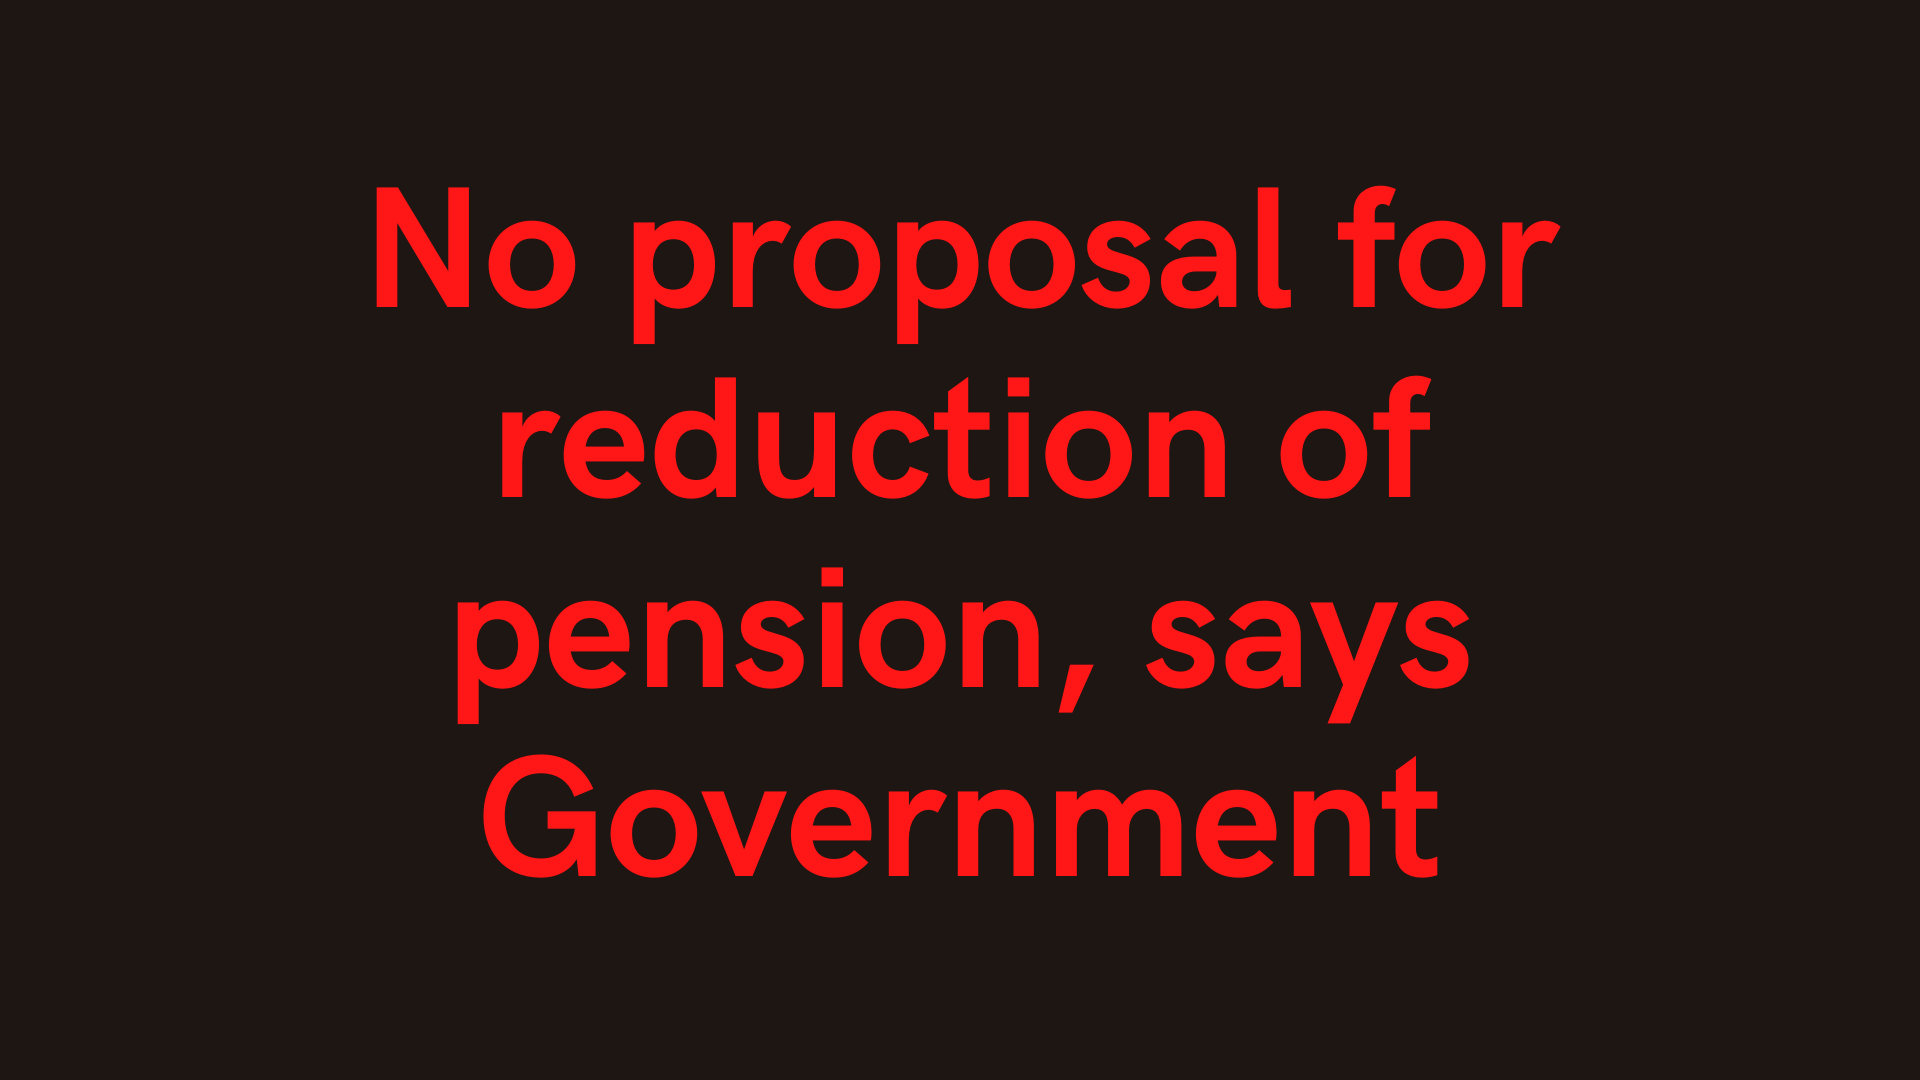 No proposal for reduction of pension, says Government